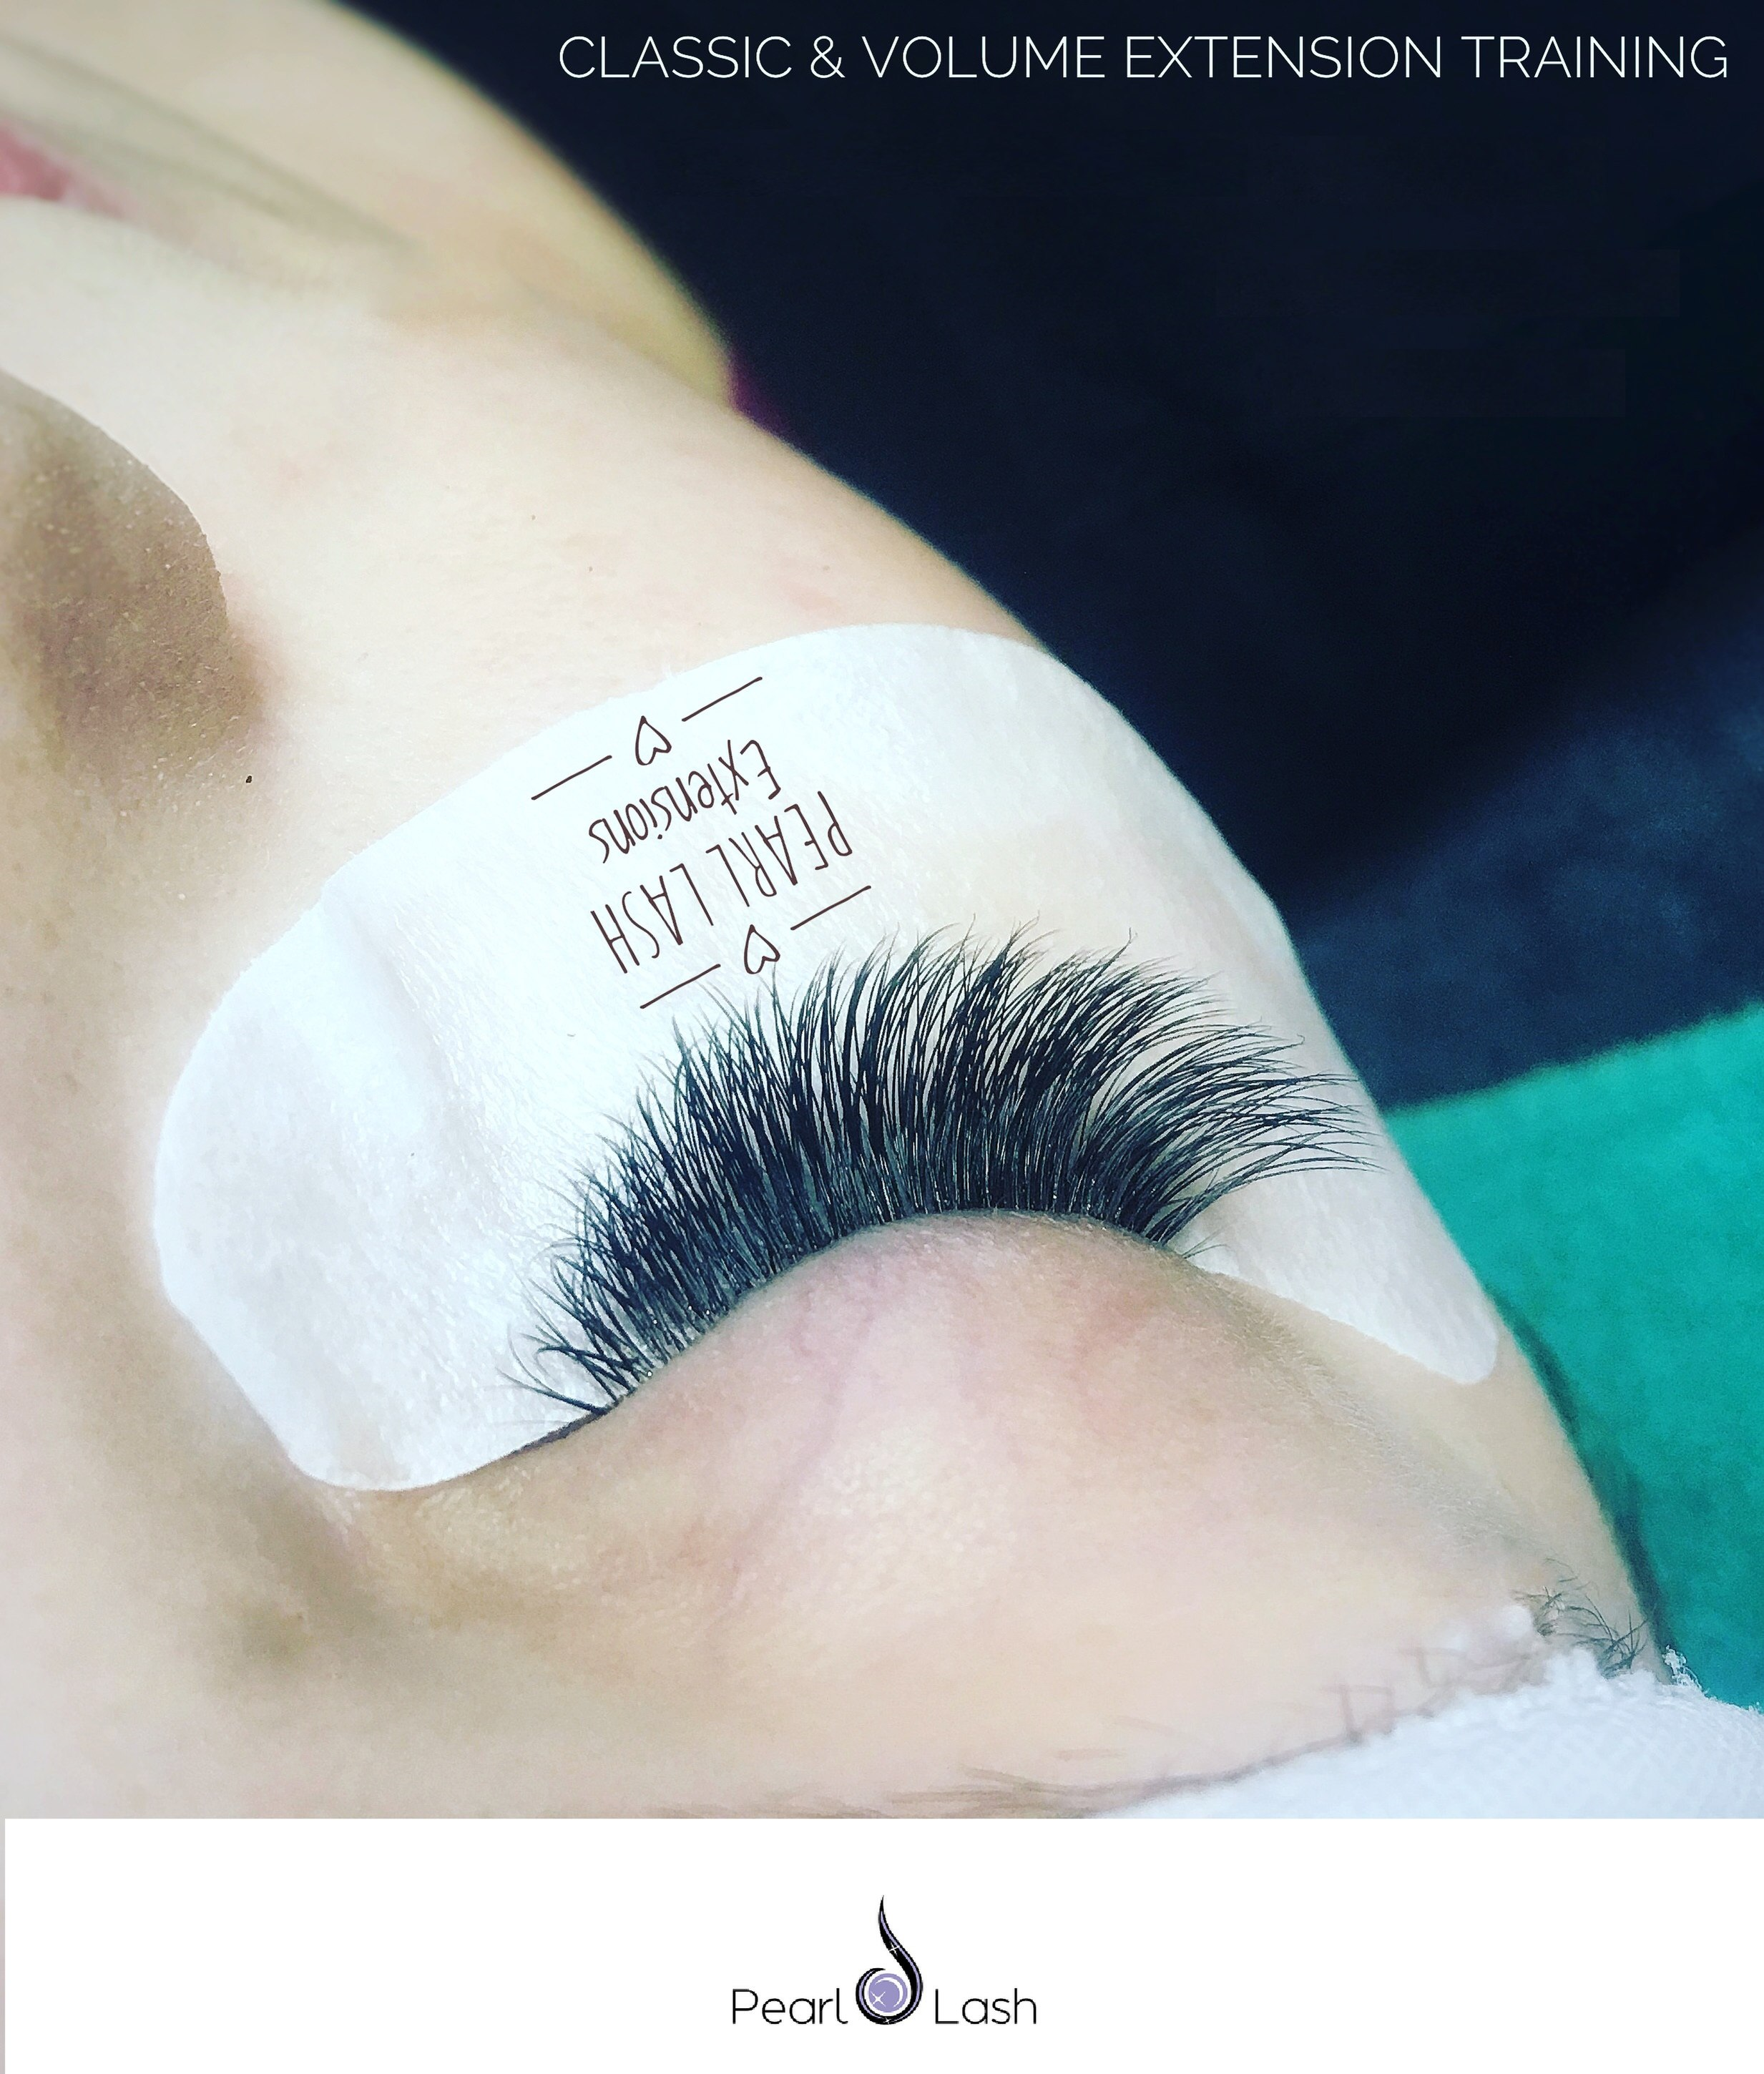 1b6591820a9 Eyelash extensions - The complete information and online sale with free  shipping. Order and buy now for the lowest price in the best online store!